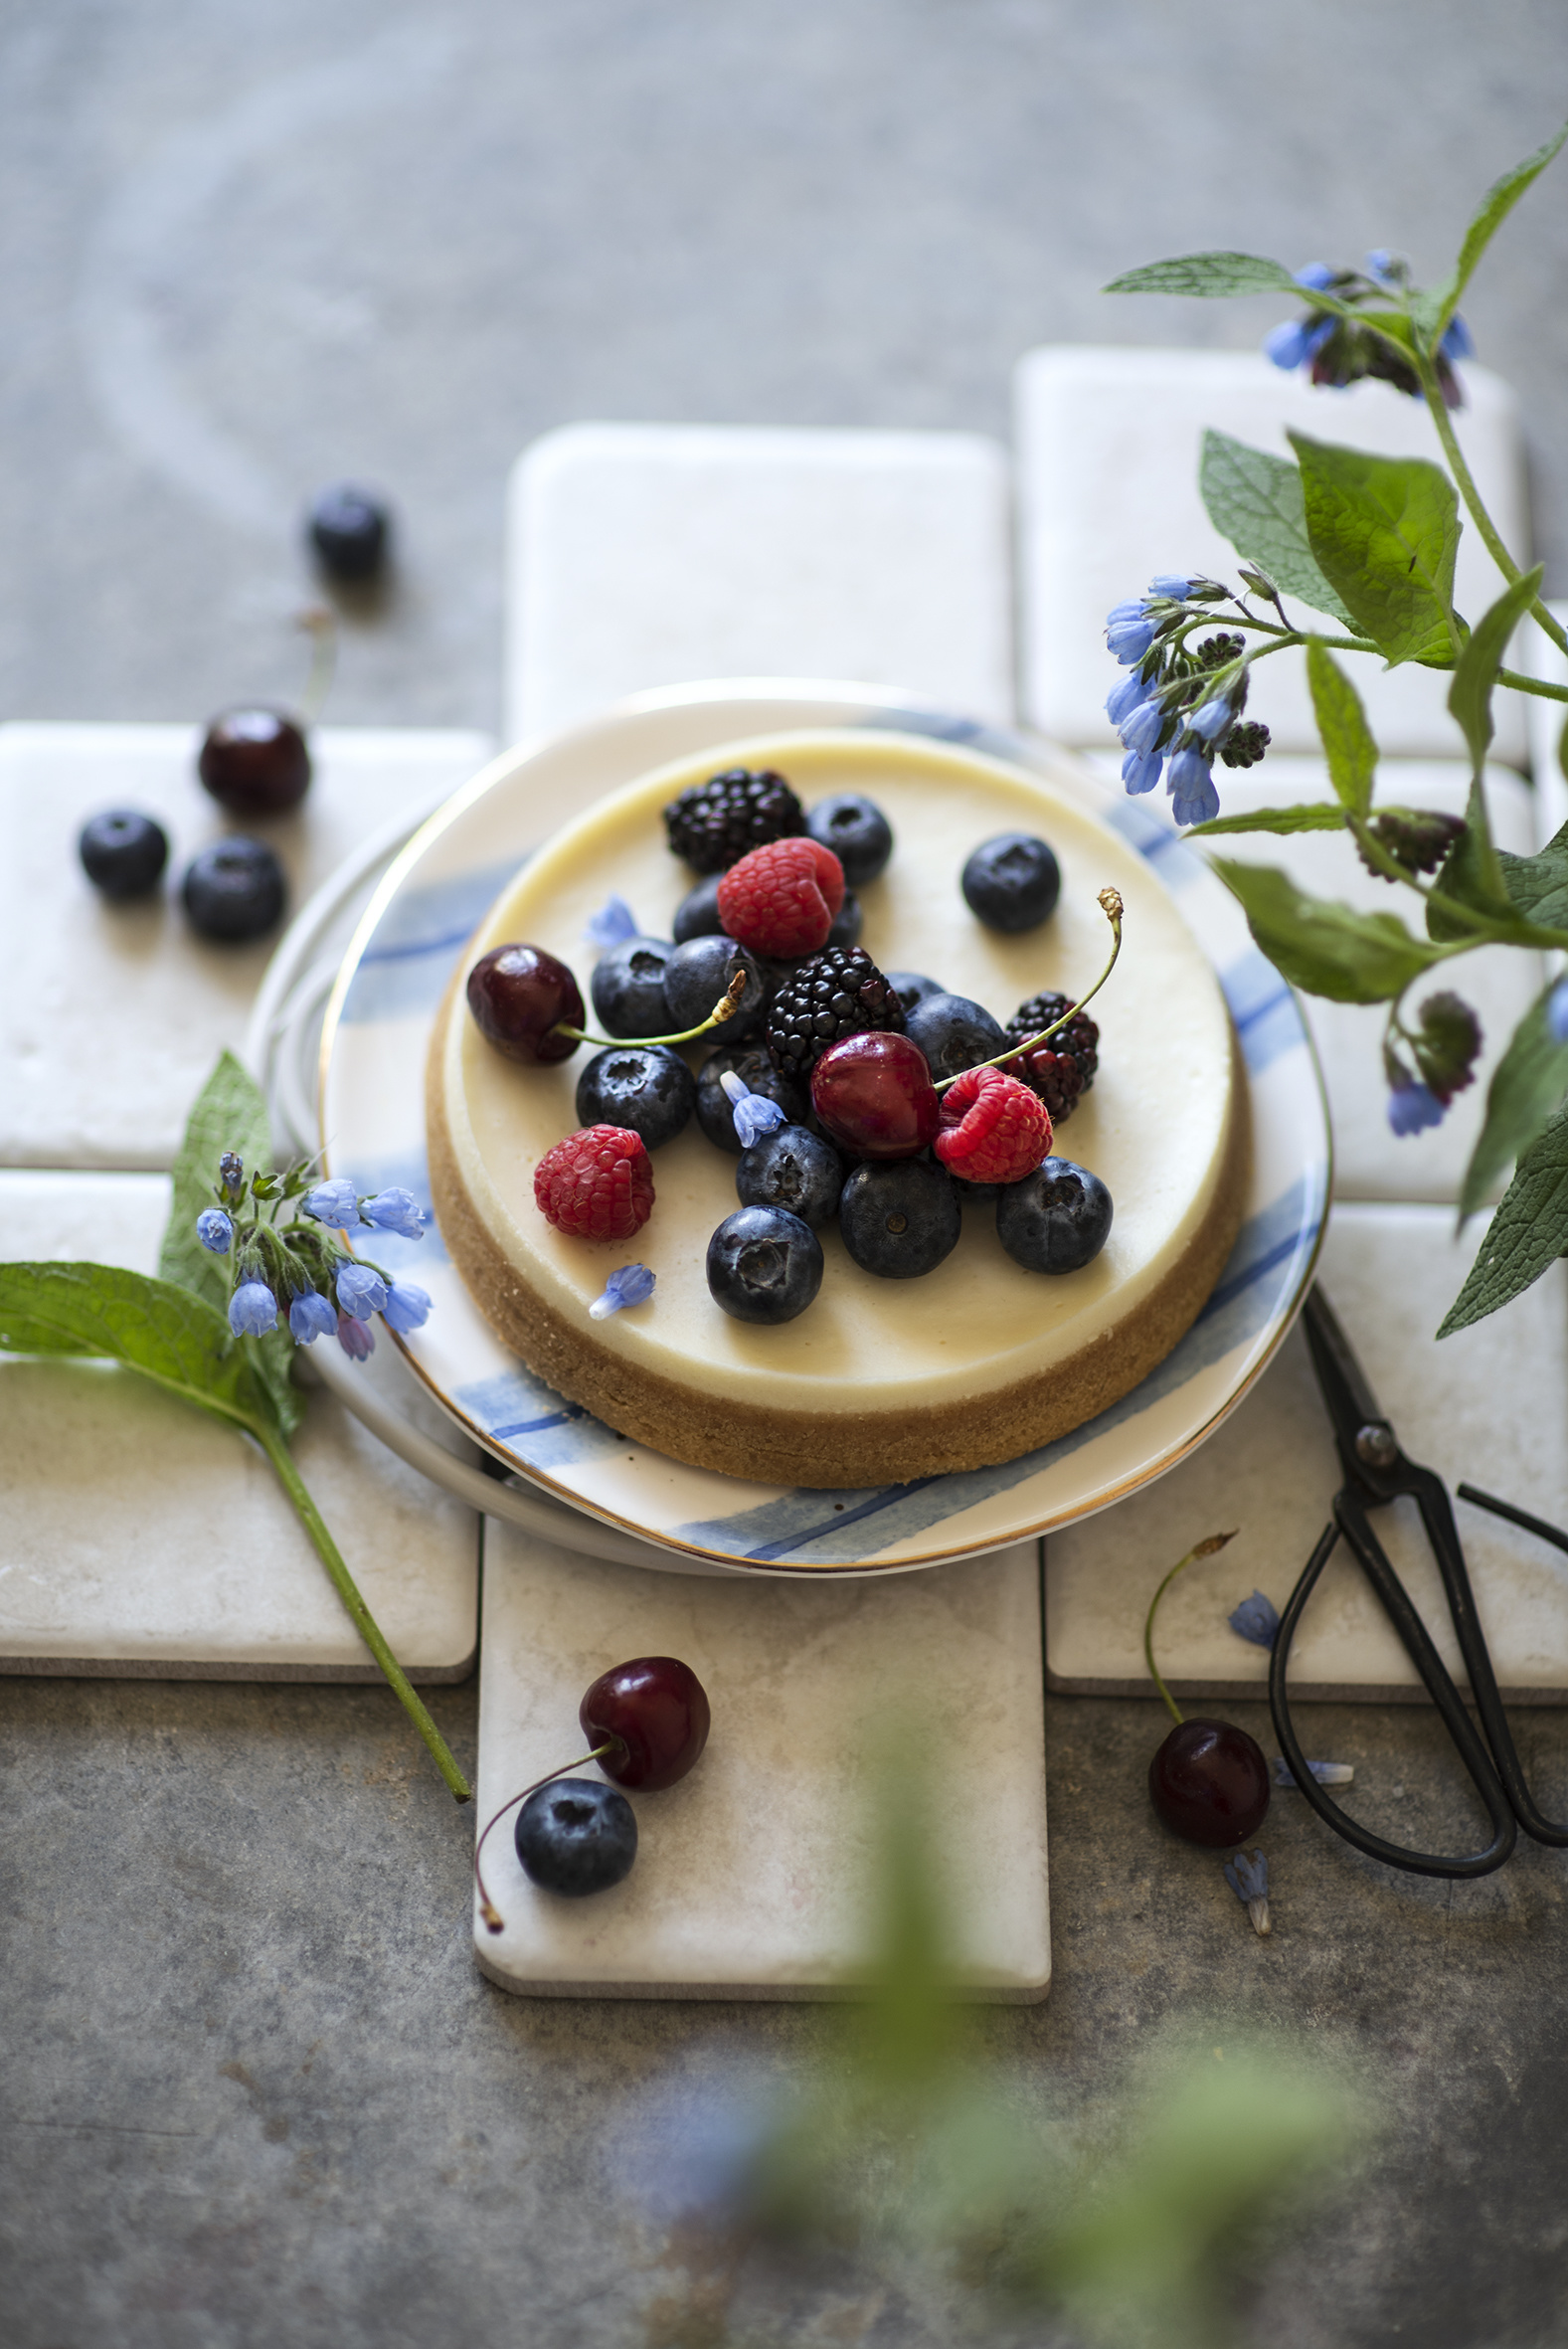 Photos Cakes Cherry Raspberry Blueberries Food Berry Plate  for Mobile phone Torte